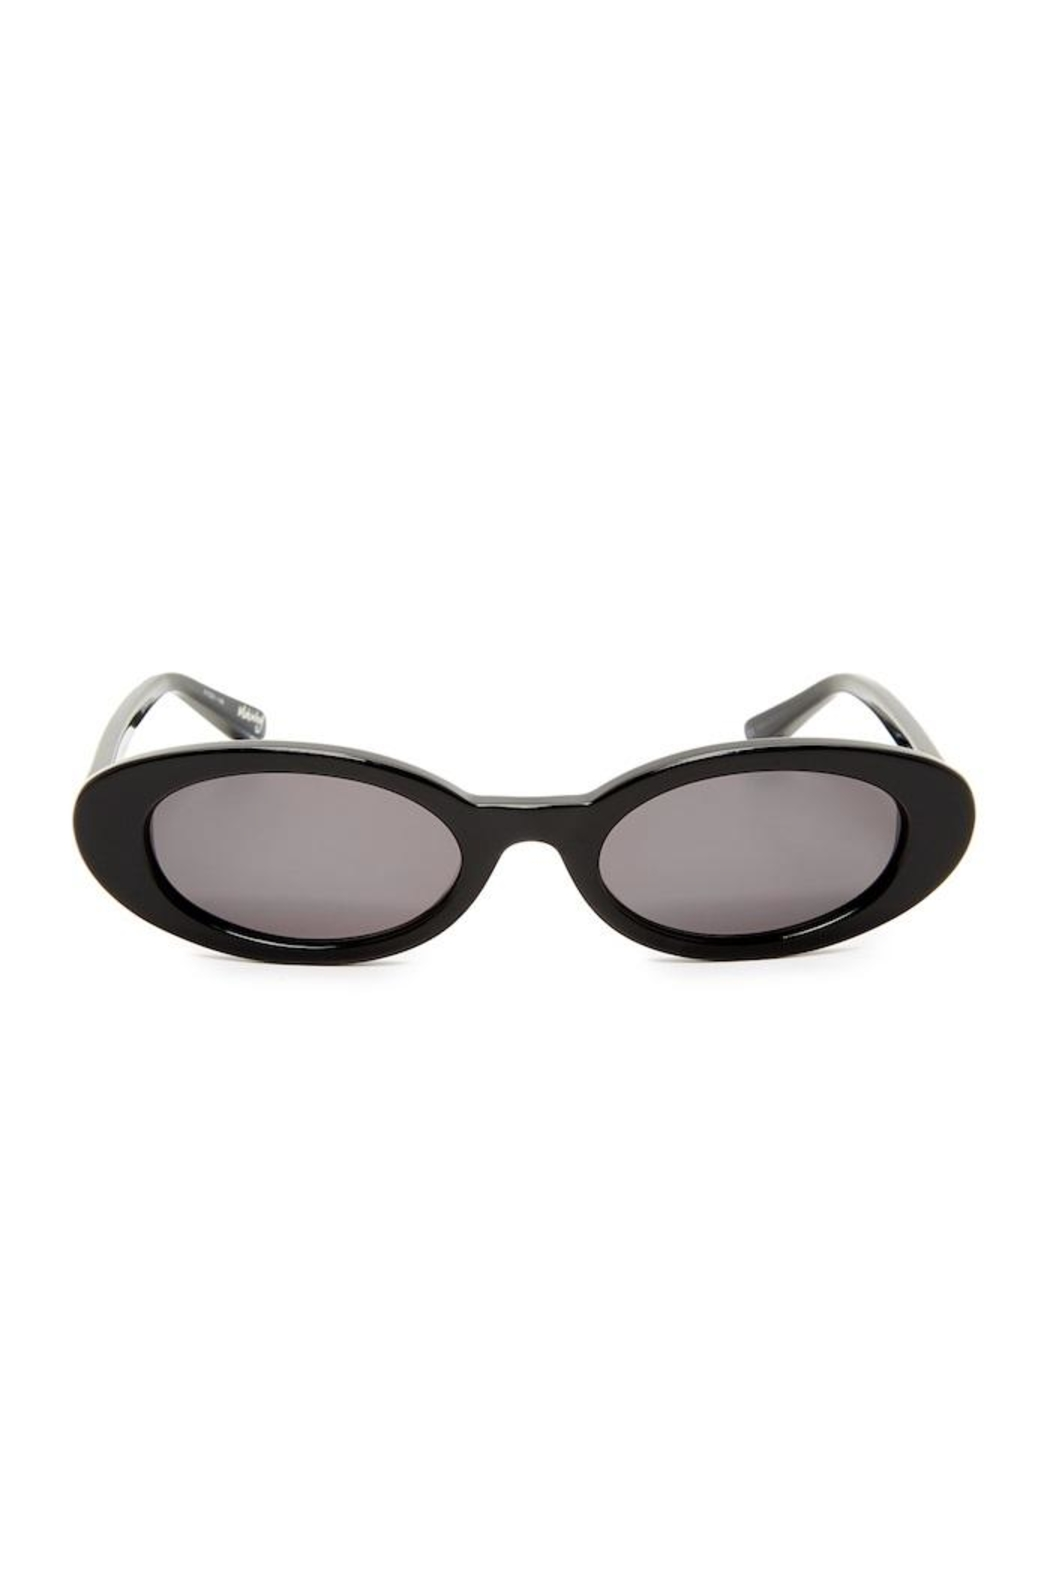 22633d5dcb Elizabeth james mckinley oval acetate from mexico i o domani jpg 1050x1575  Elizabeth and james mckinley sunglasses